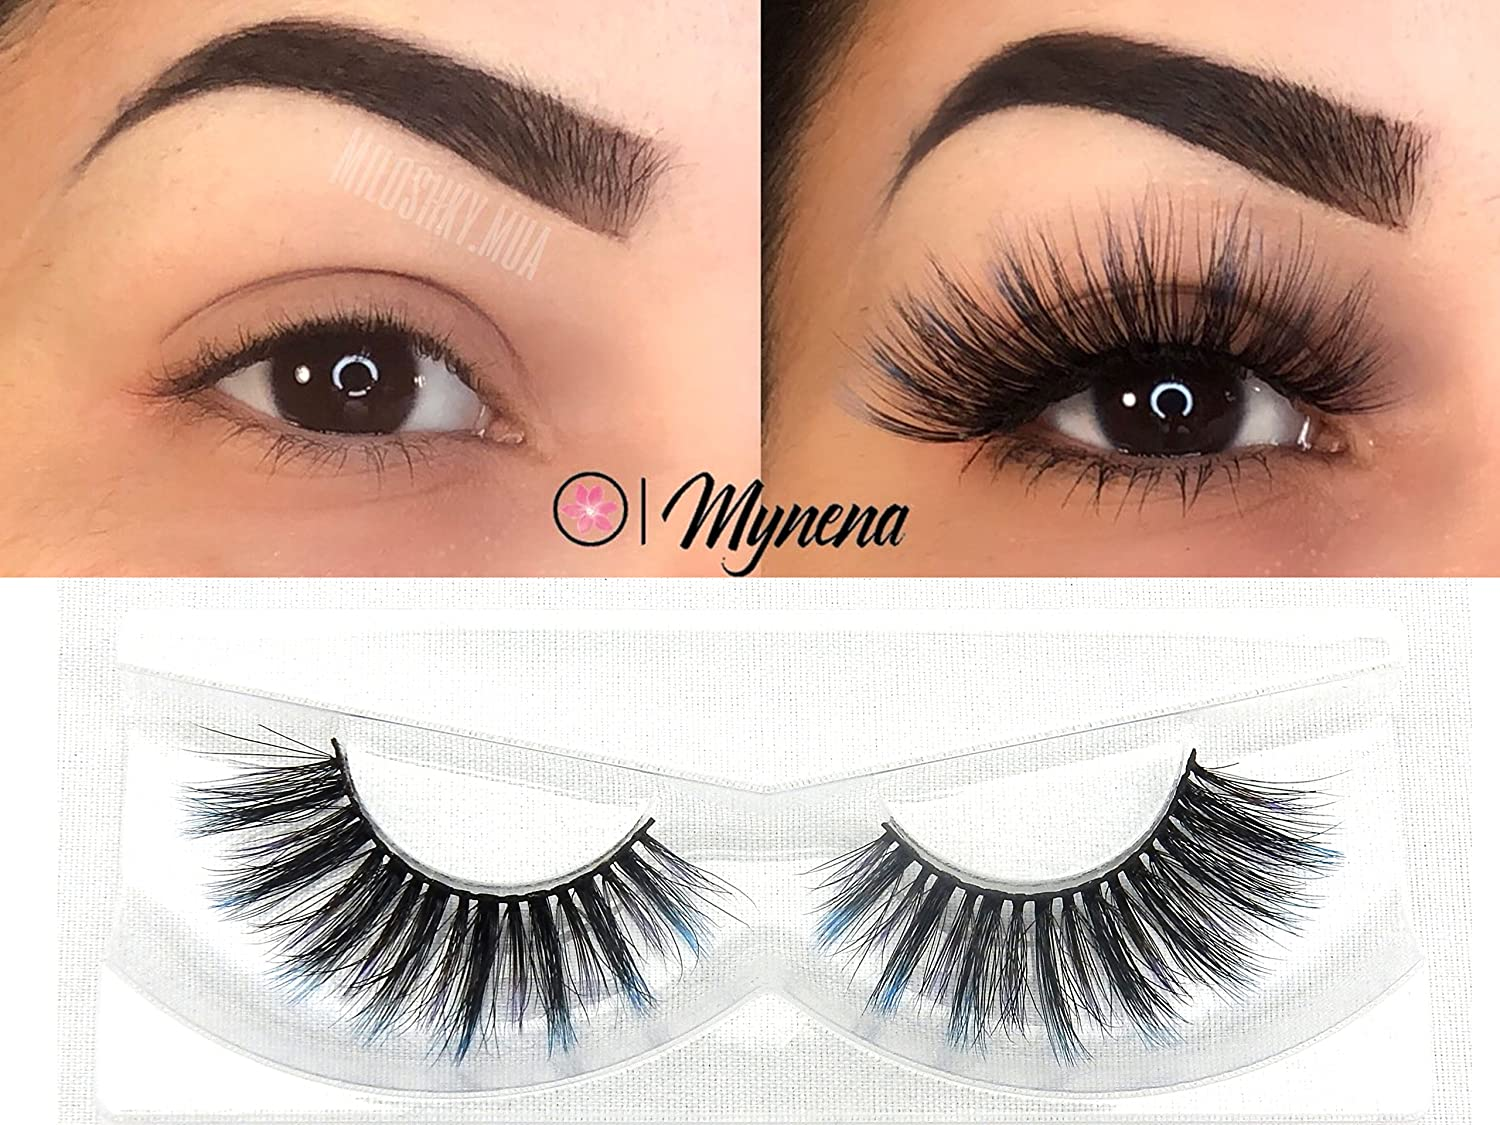 0526360cad6 Amazon.com : Faux Mink Lashes 3D False Eyelashes Natural to Dramatic Look  Collection | Reusables | Handmade Vegan and Cruelty-Free | Premium Quality  | Blue ...